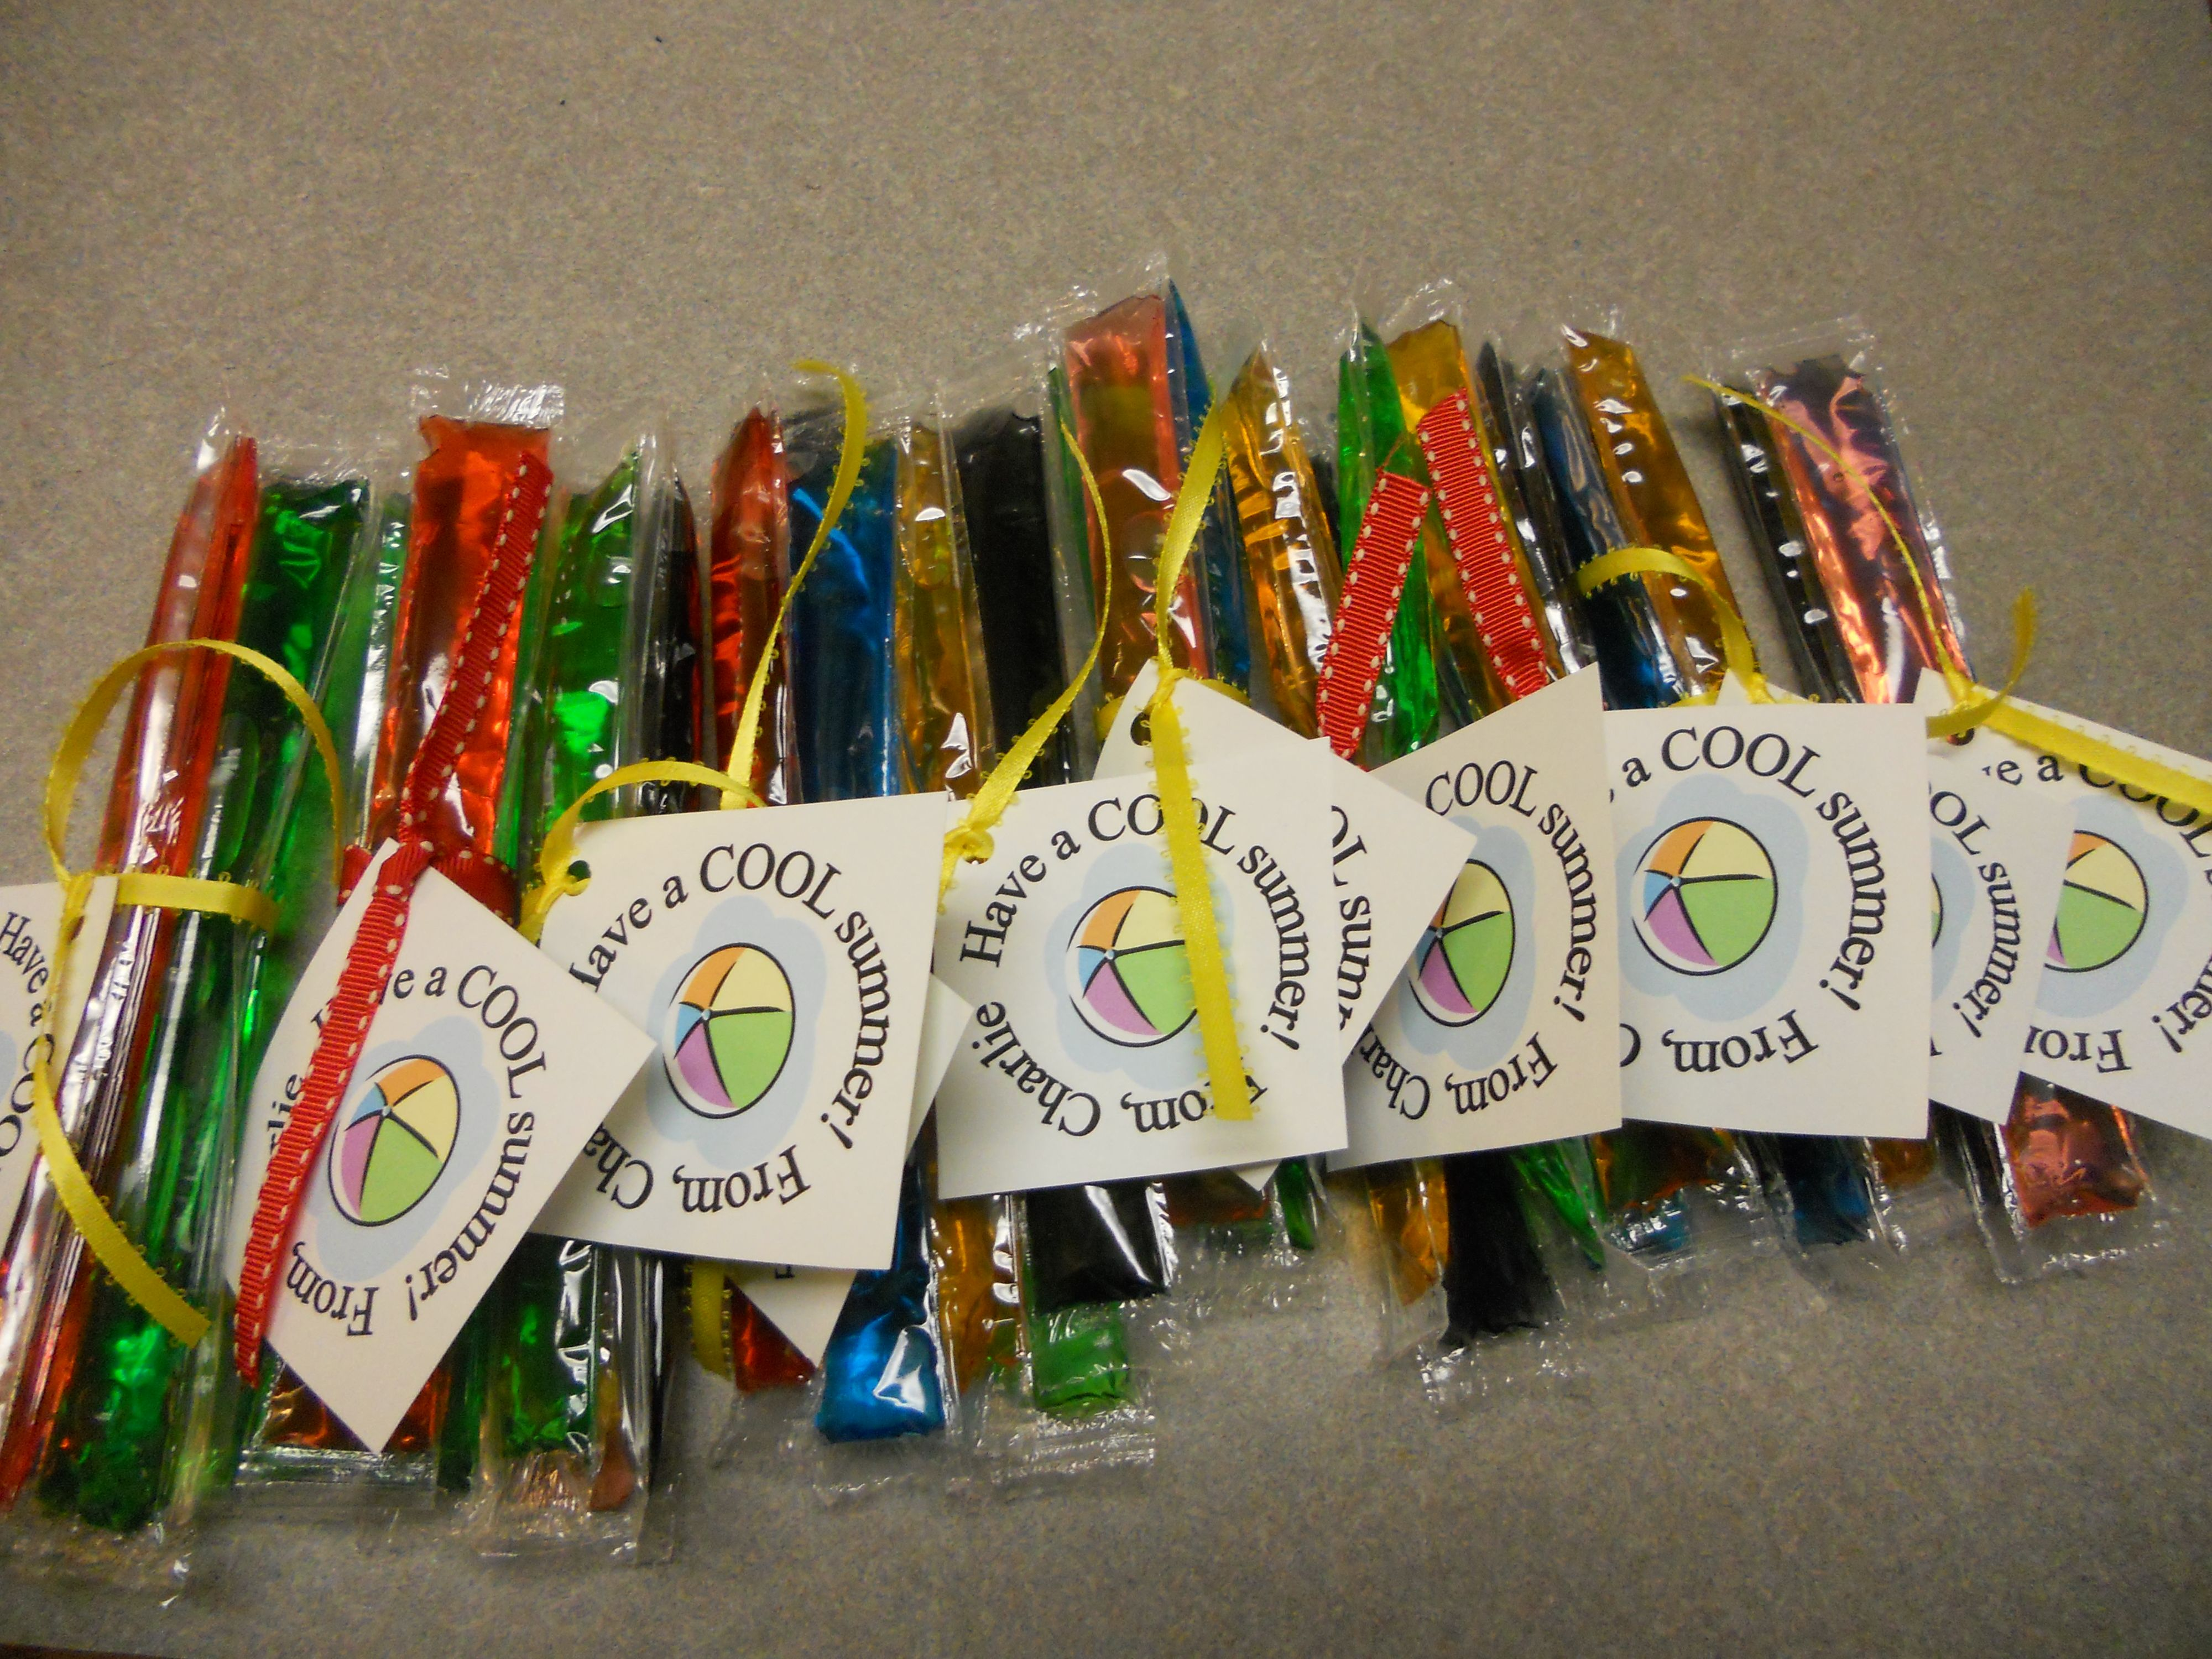 Scout bags for school - End Of Year Gifts For Classmates Doing These With Motts Freezy Pops